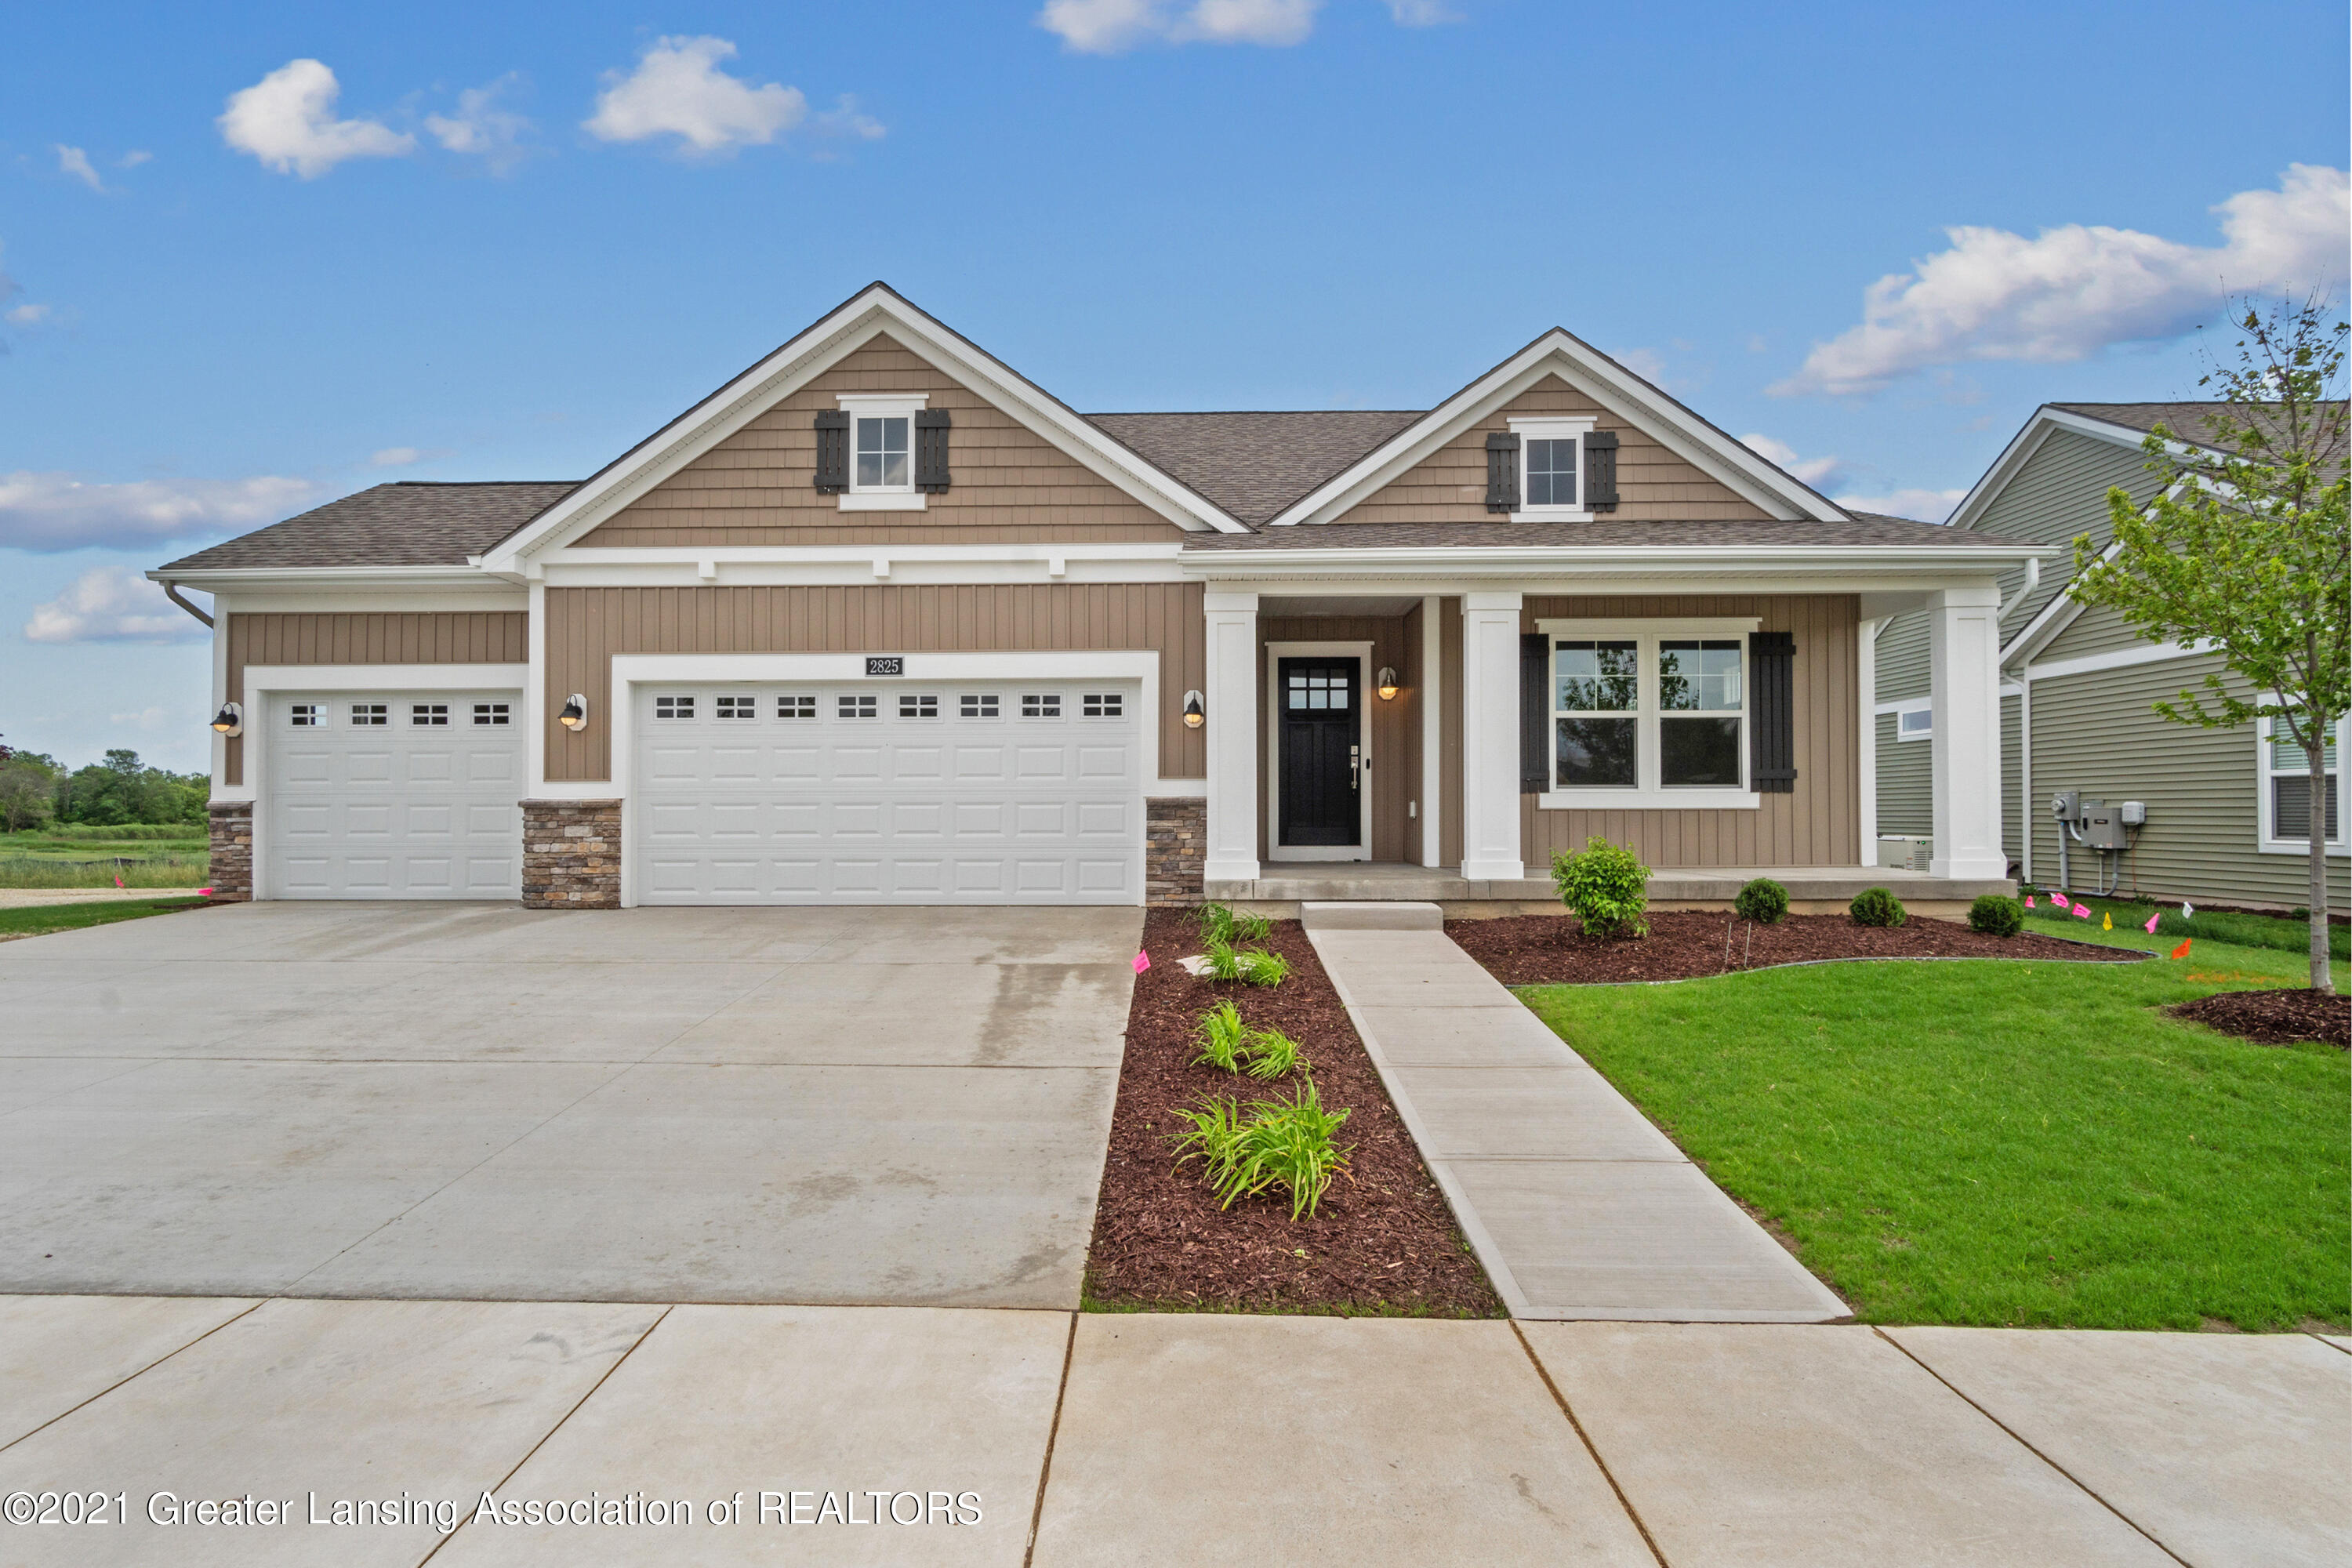 2825 Ballybunion Dr - Front View - 1